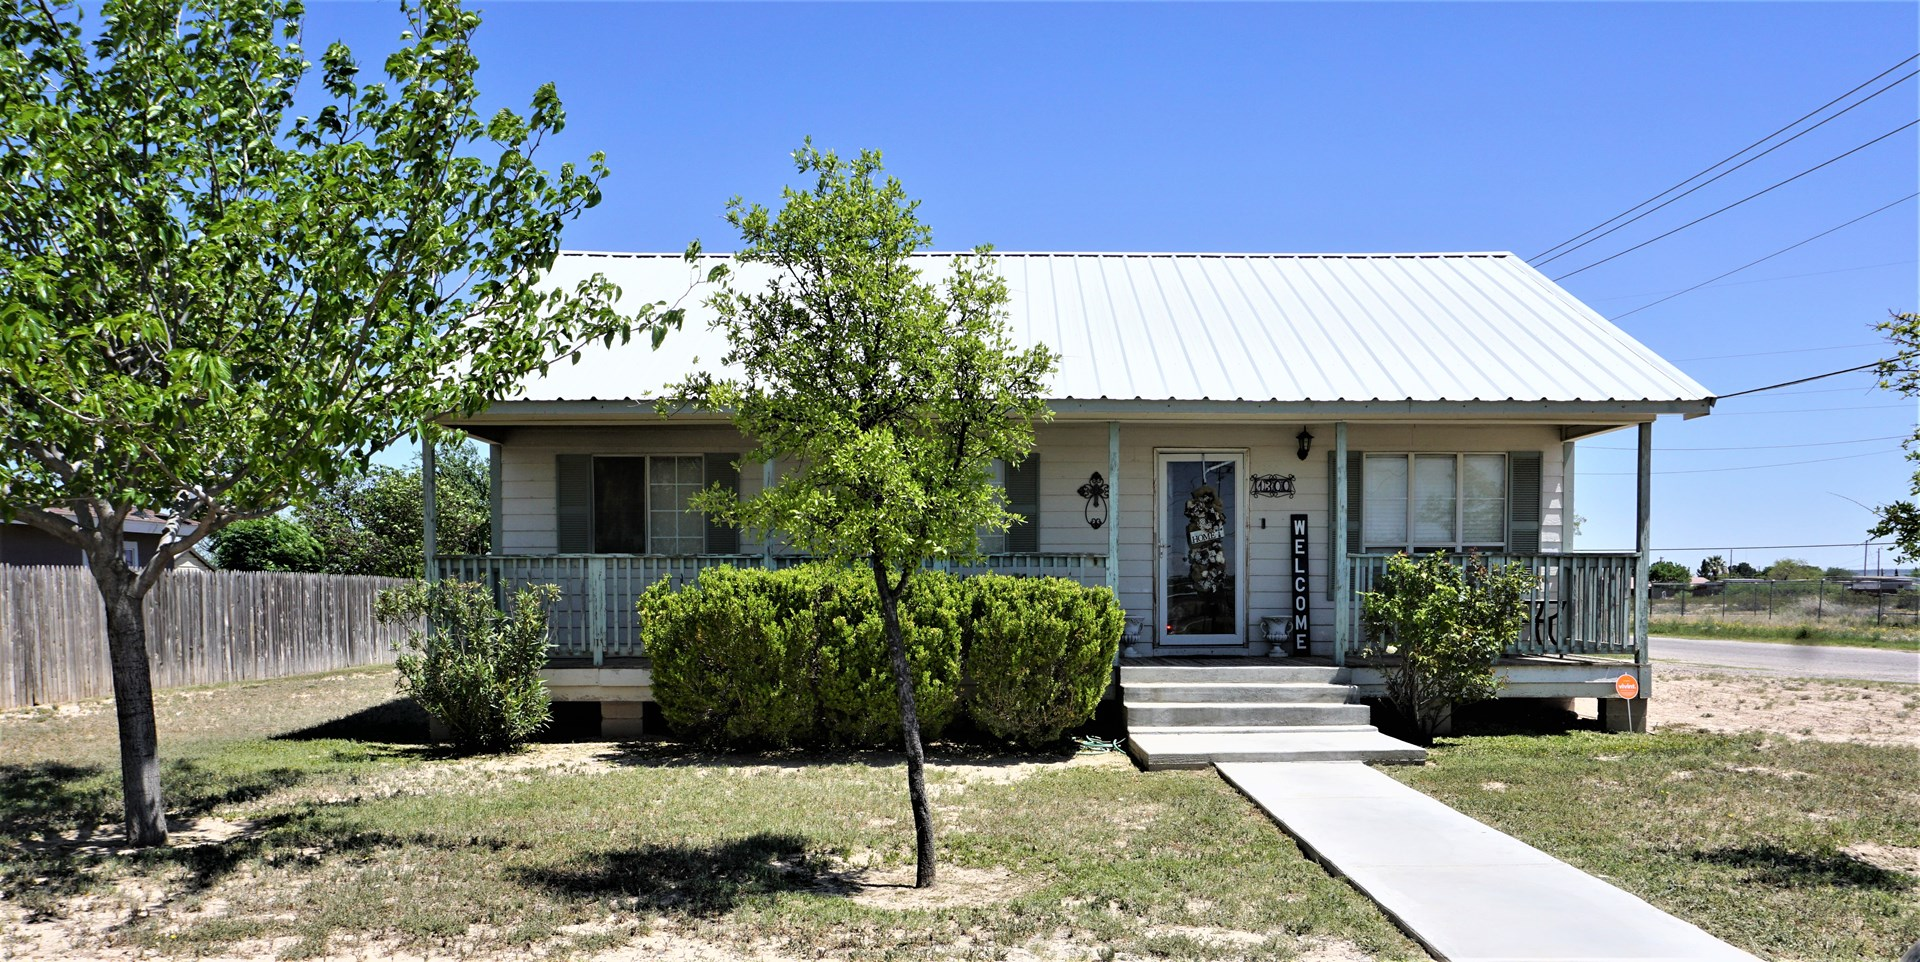 JUST LISTED! 1300 N ROONEY - CORNER LOT FORT STOCKTON, TX